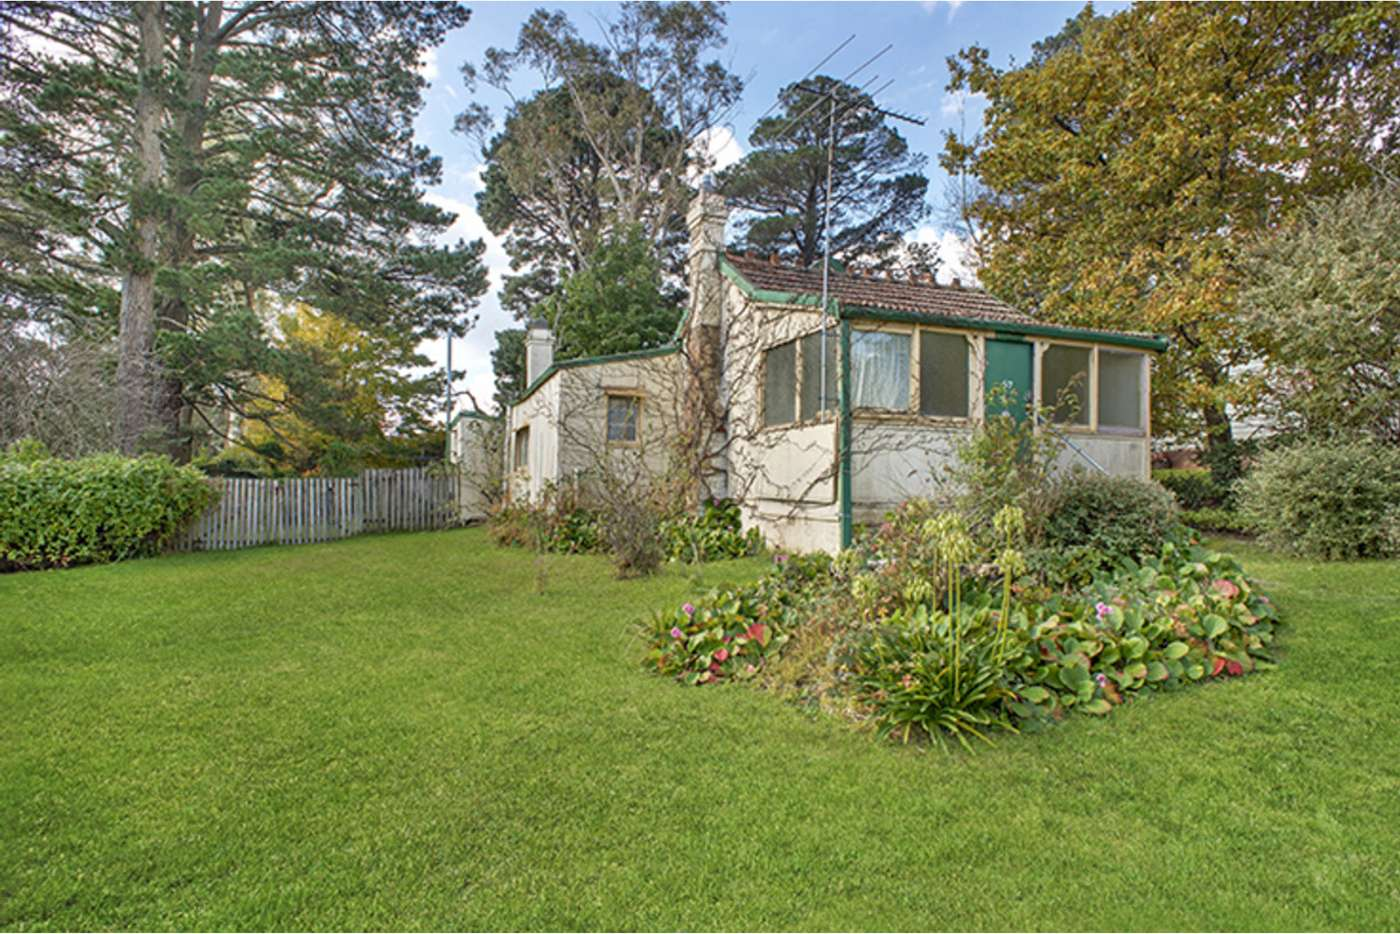 Main view of Homely house listing, 57 Twynam Street, Katoomba NSW 2780